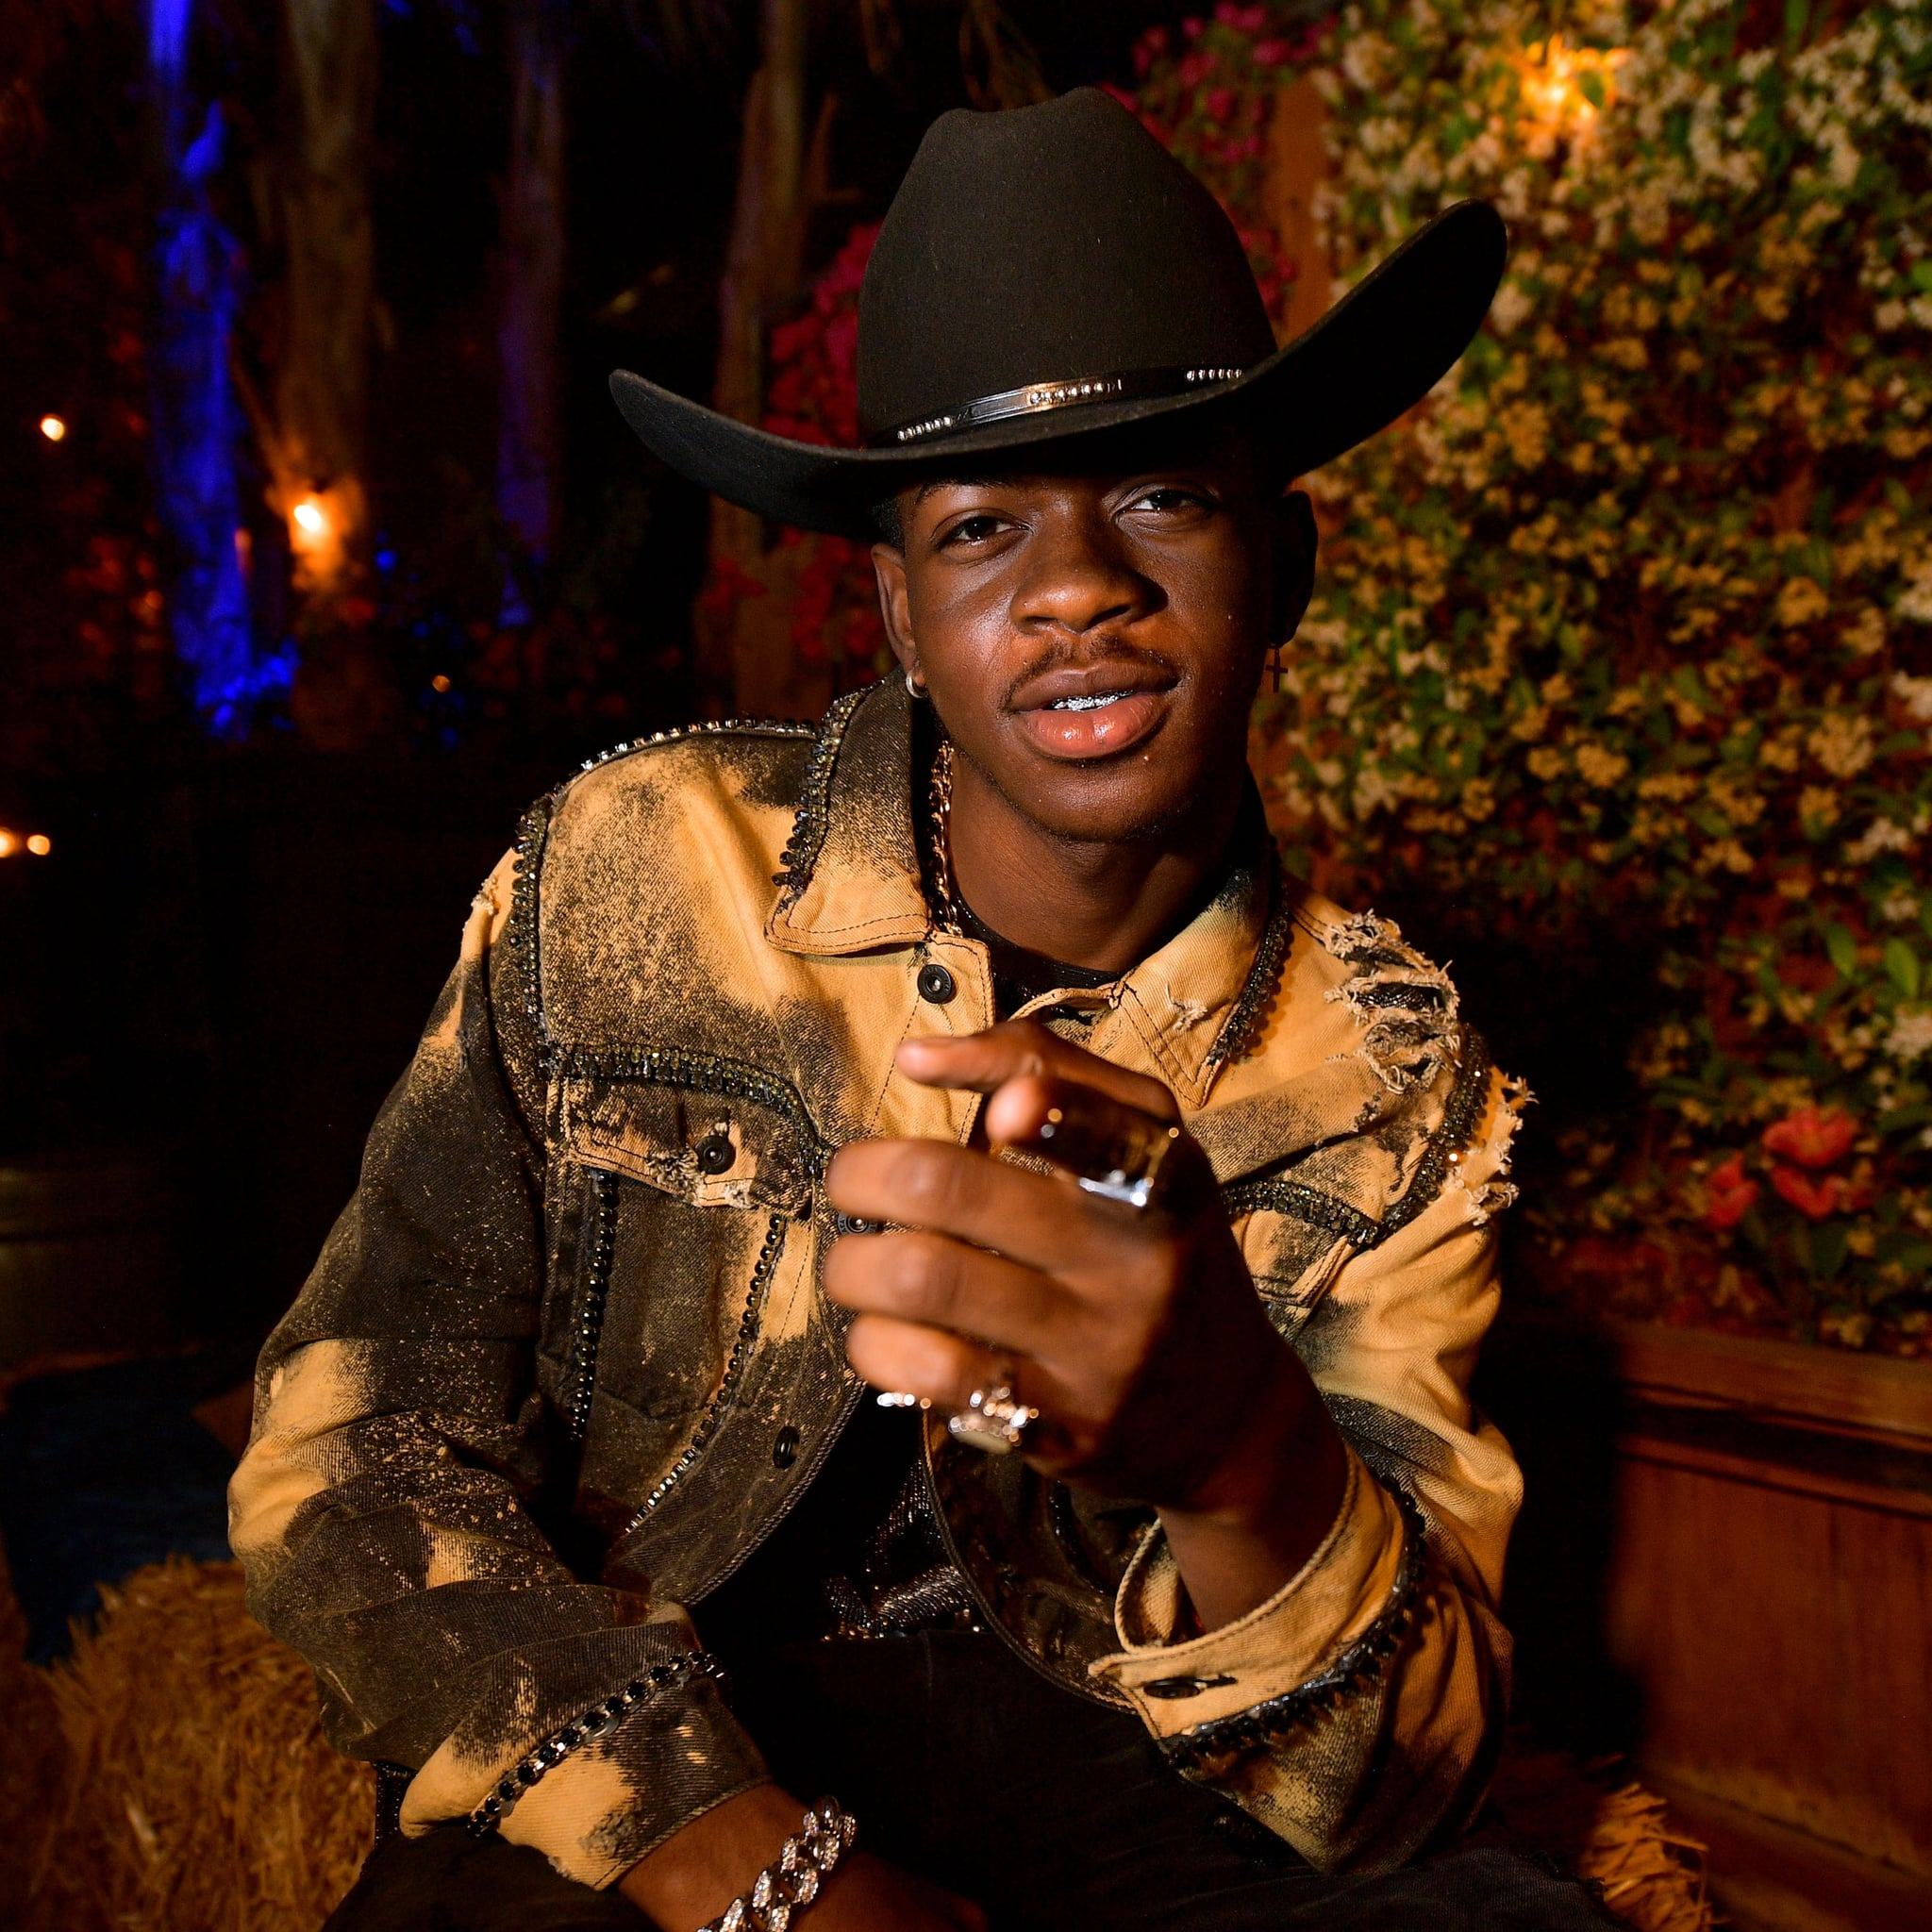 Town Road Lil Nas Old X Lil Nas